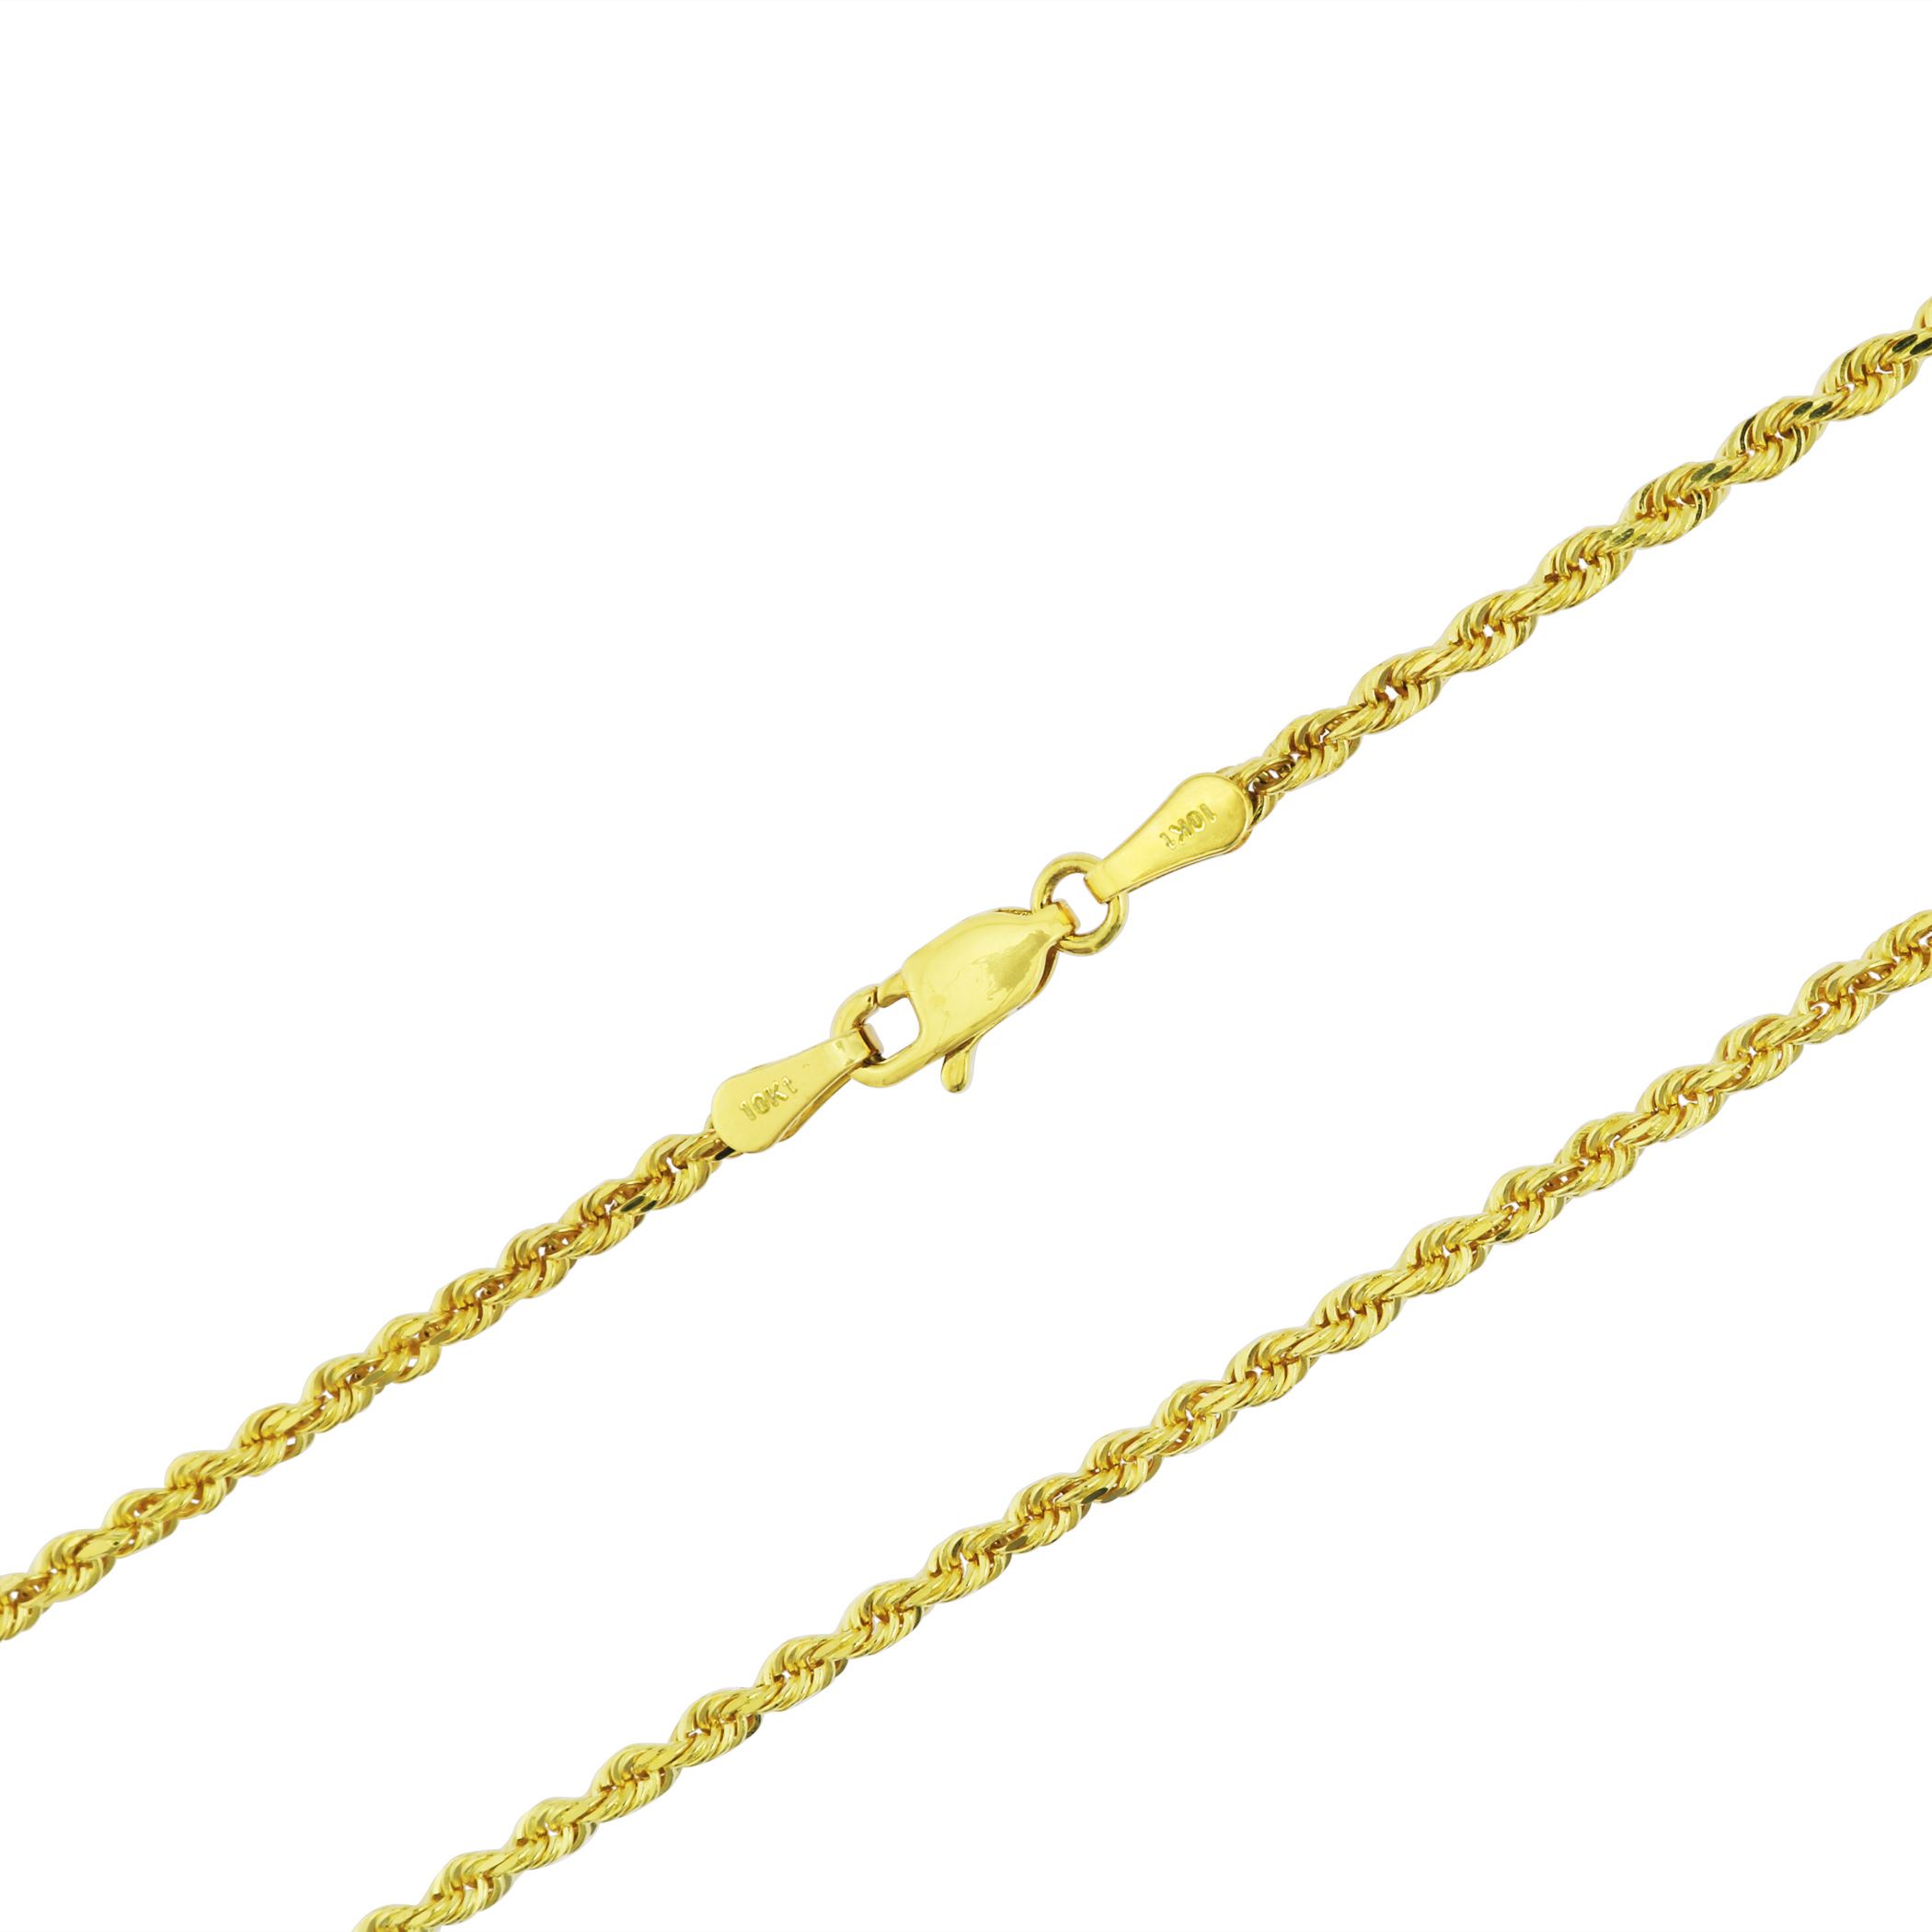 10K-Yellow-Gold-2-5mm-Solid-Rope-Chain-Pendant-Necklace-Lobster-Clasp-16-034-30-034 thumbnail 23